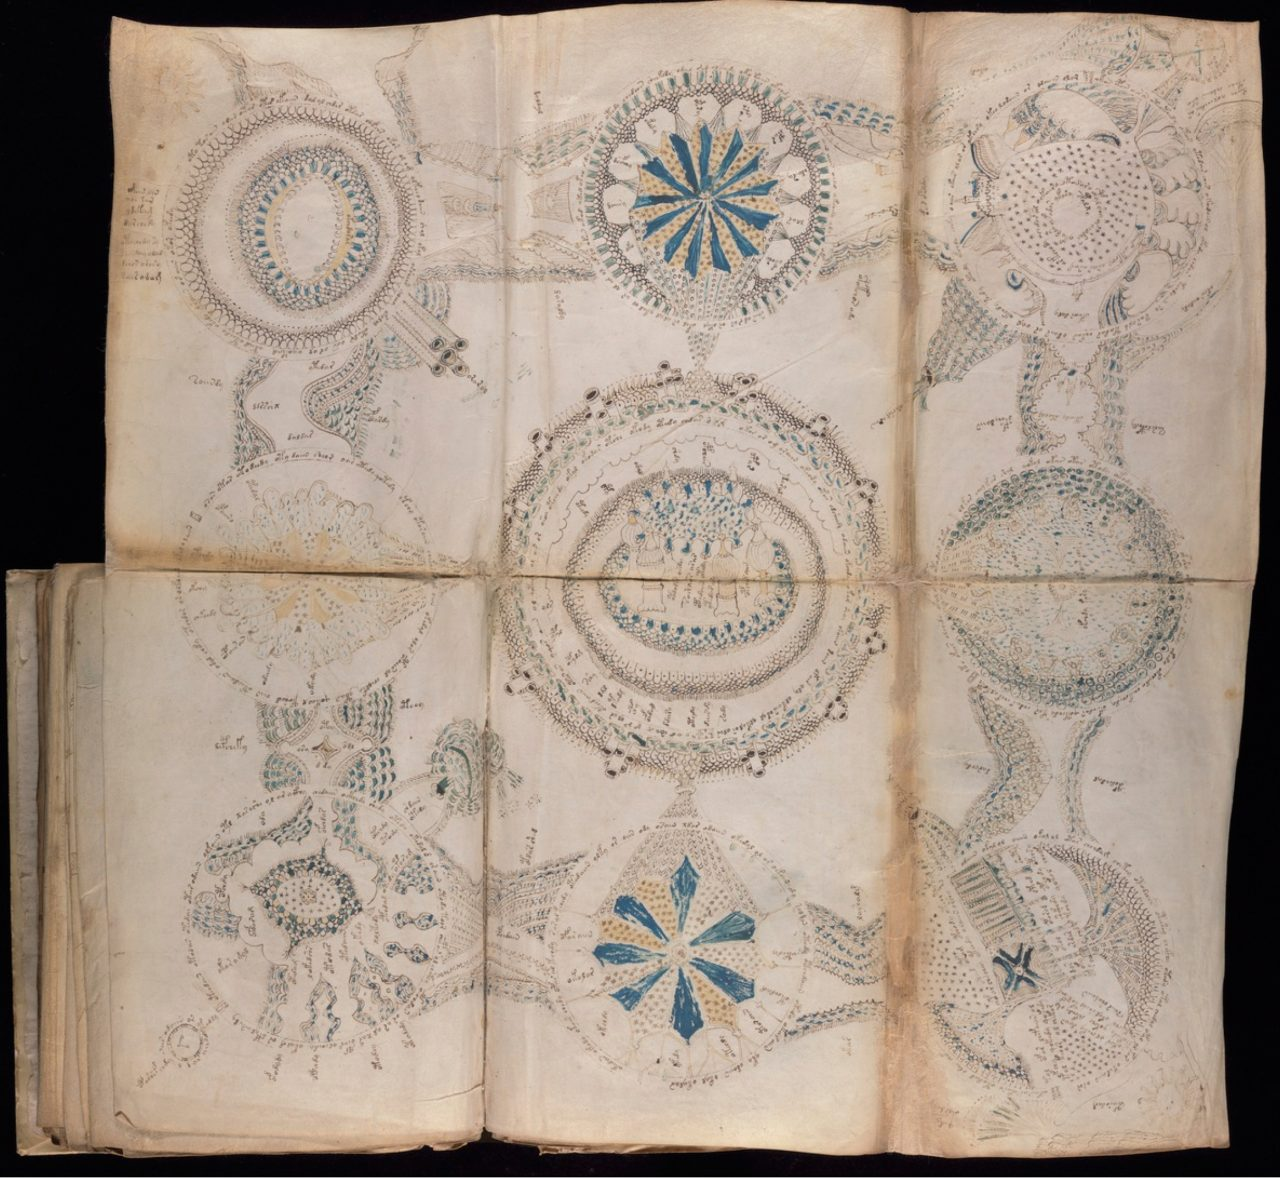 https://www.artsandcollections.com/wp-content/uploads/2019/05/Extract-from-the-Voynich-Manuscript-courtesy-Yale-University-03-1280x1179.jpg